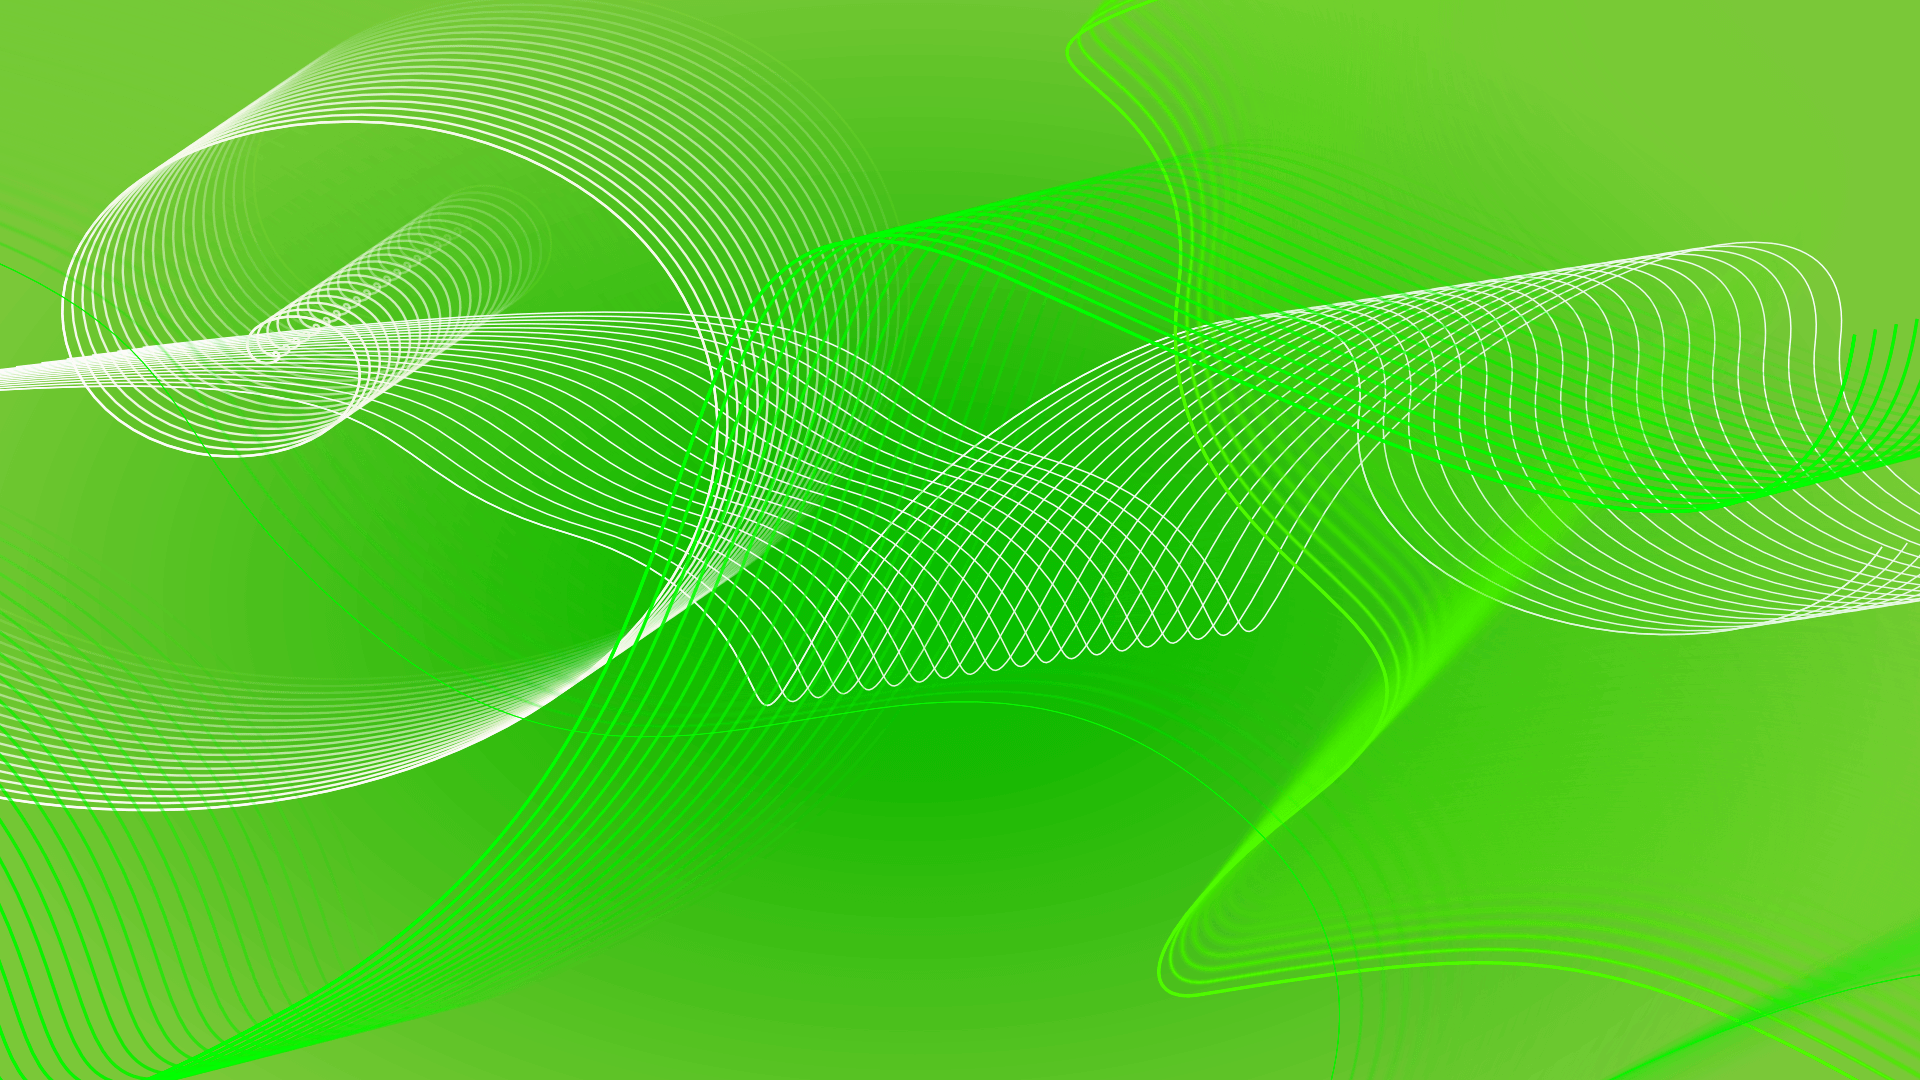 Background image opacity html -  Set Green Spirals As Background Image